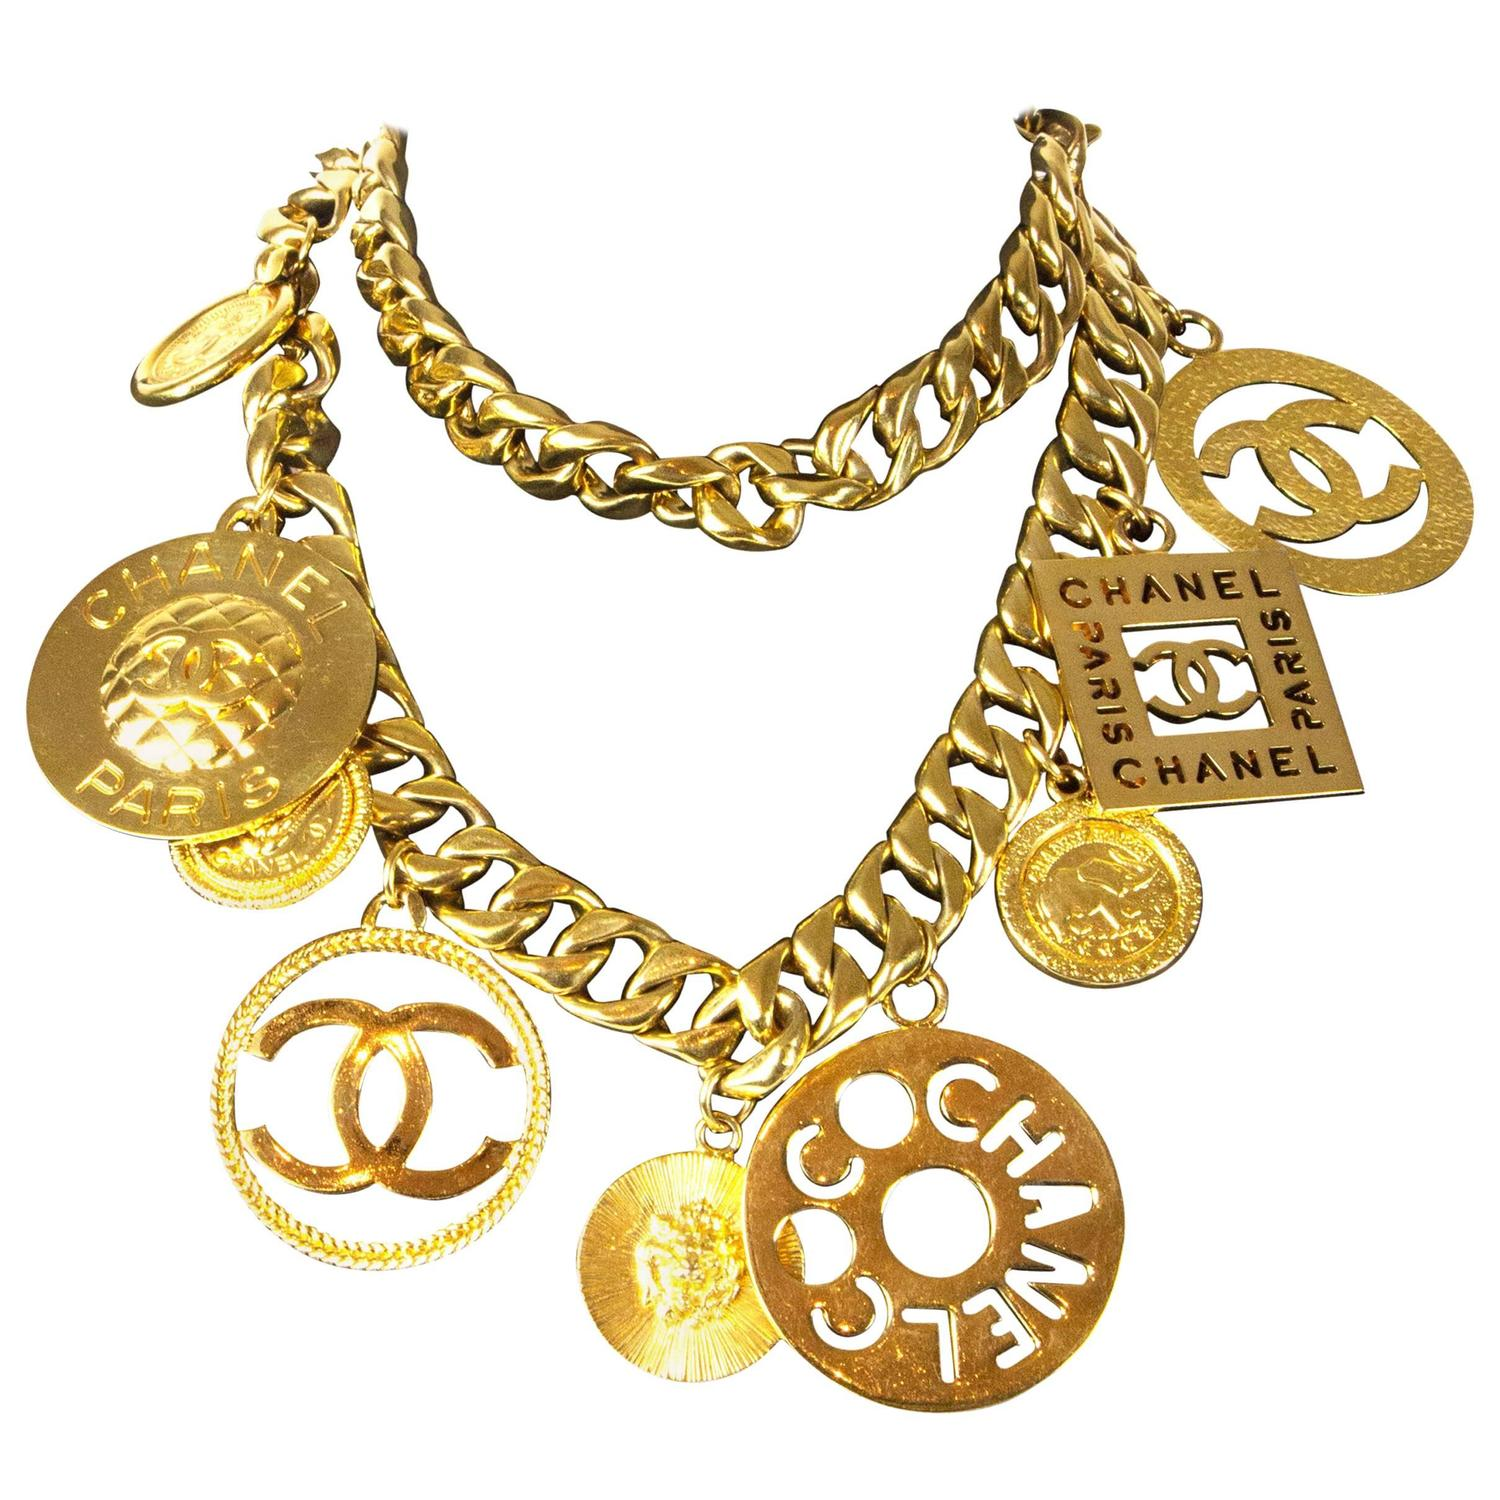 j for sale gold and at necklace chain jewelry id medallion necklaces bulgari z